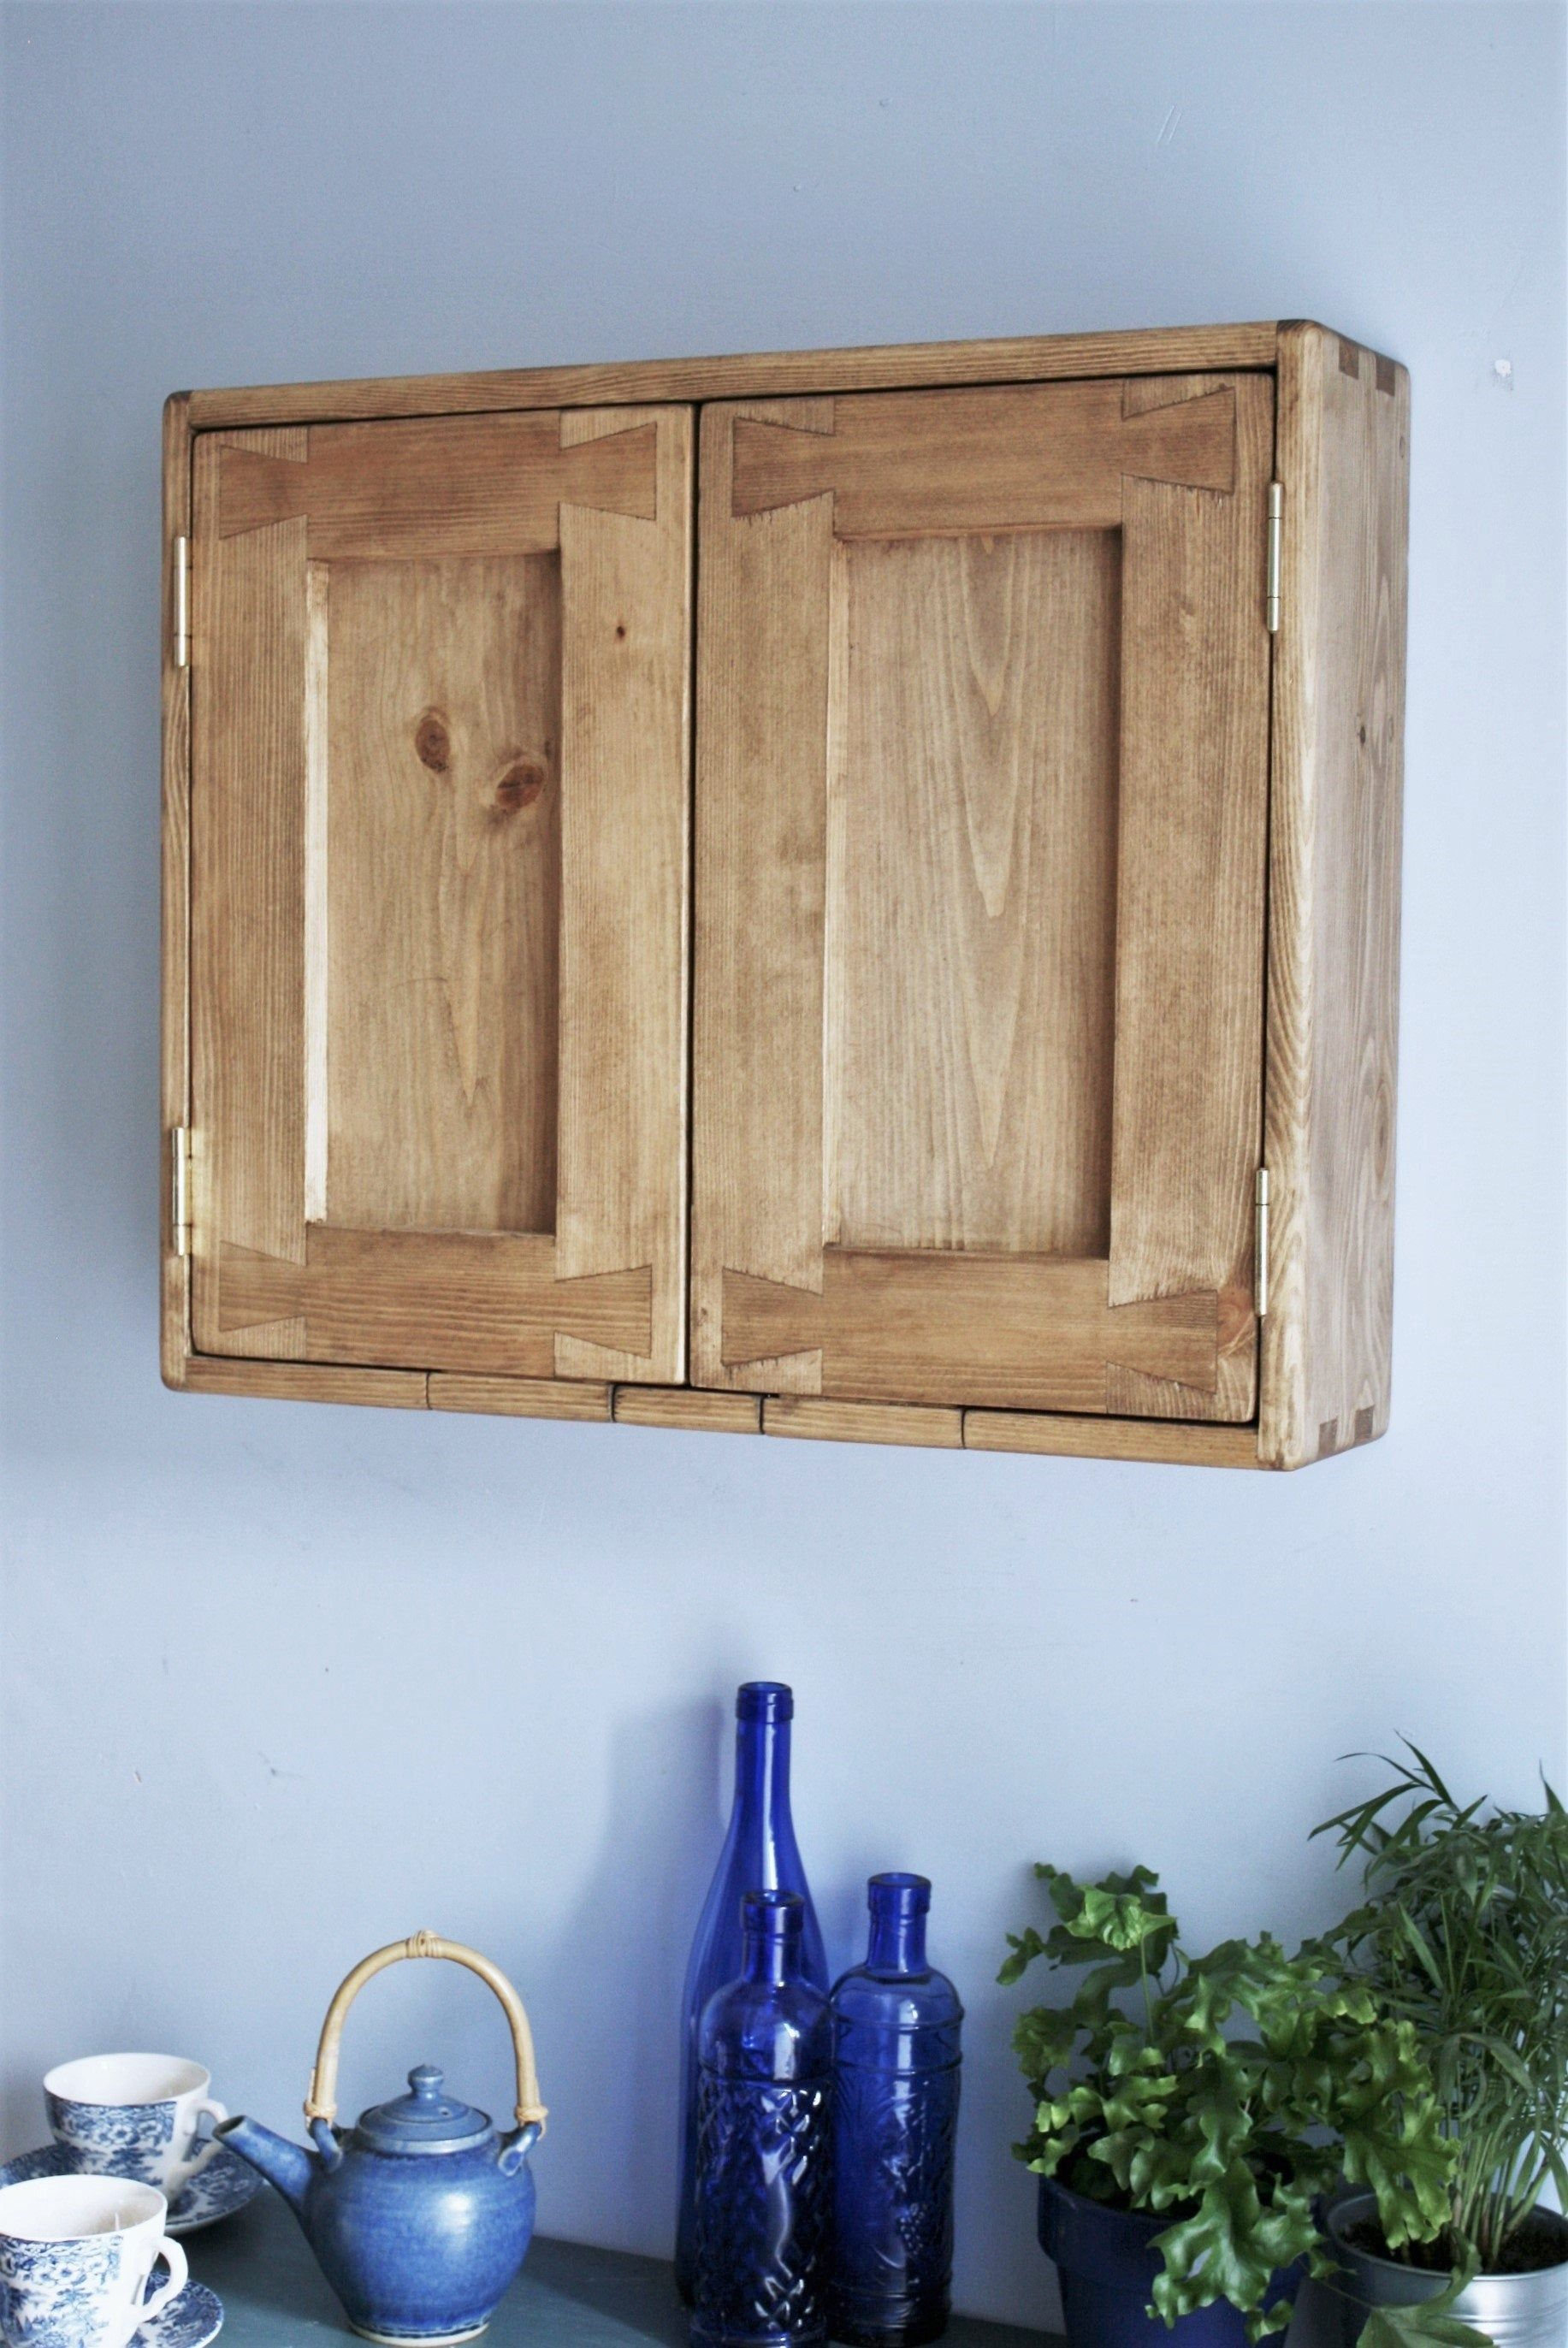 Wooden Bathroom Wall Cabinet Modern Rustic 50h X 60w X 14d Cm Double Doors 2 Shelves Natural Light Wood Custom Handmade Somerset Uk In 2020 Wall Cabinet Bathroom Wall Cabinets Rustic Wooden Furniture